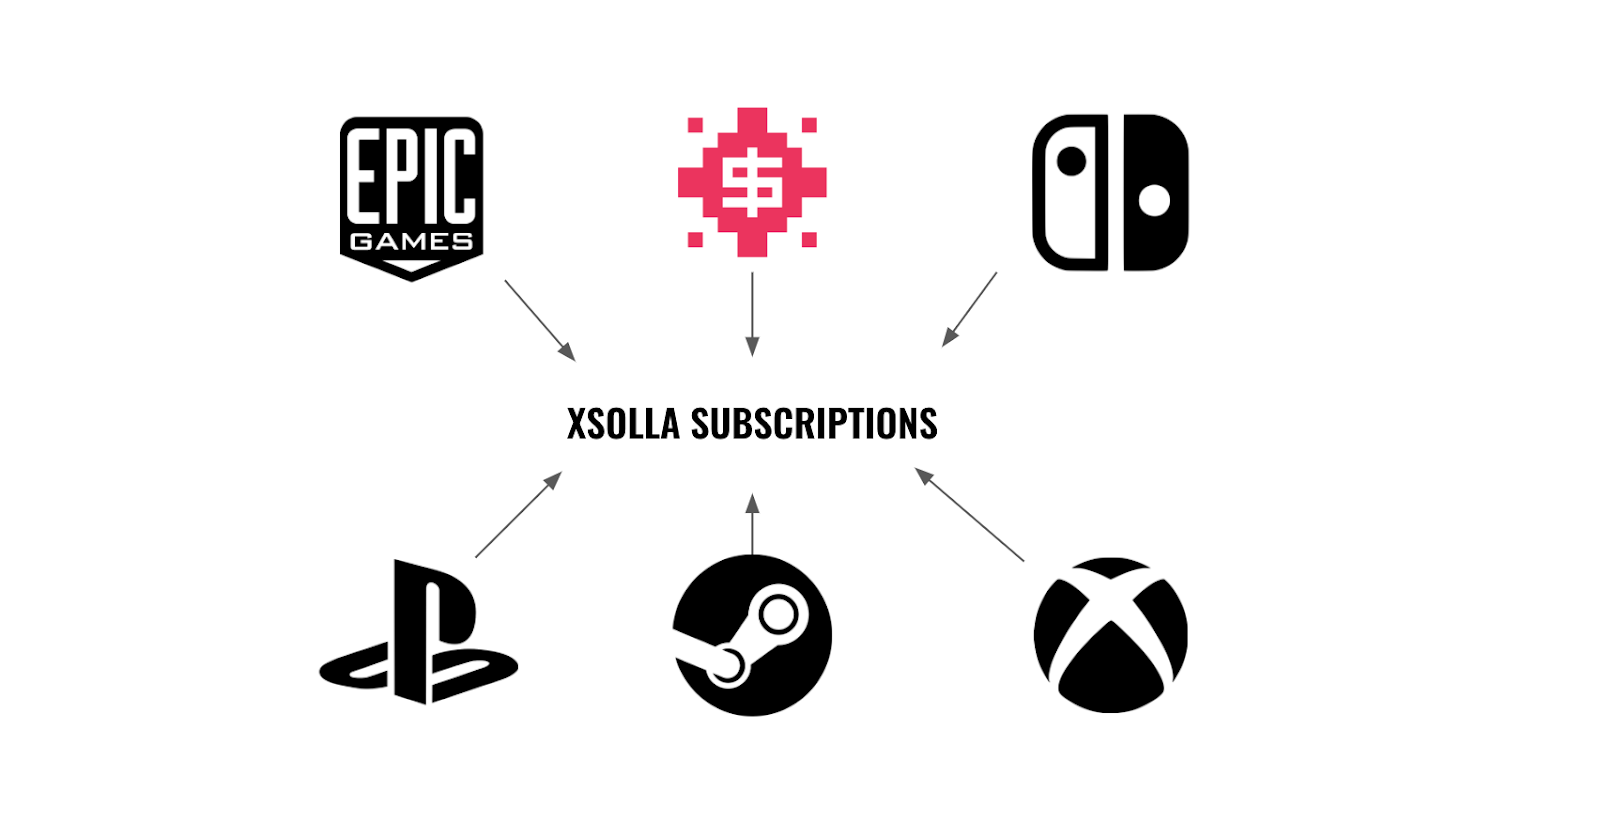 Platforms and Xsolla Subscriptions diagram